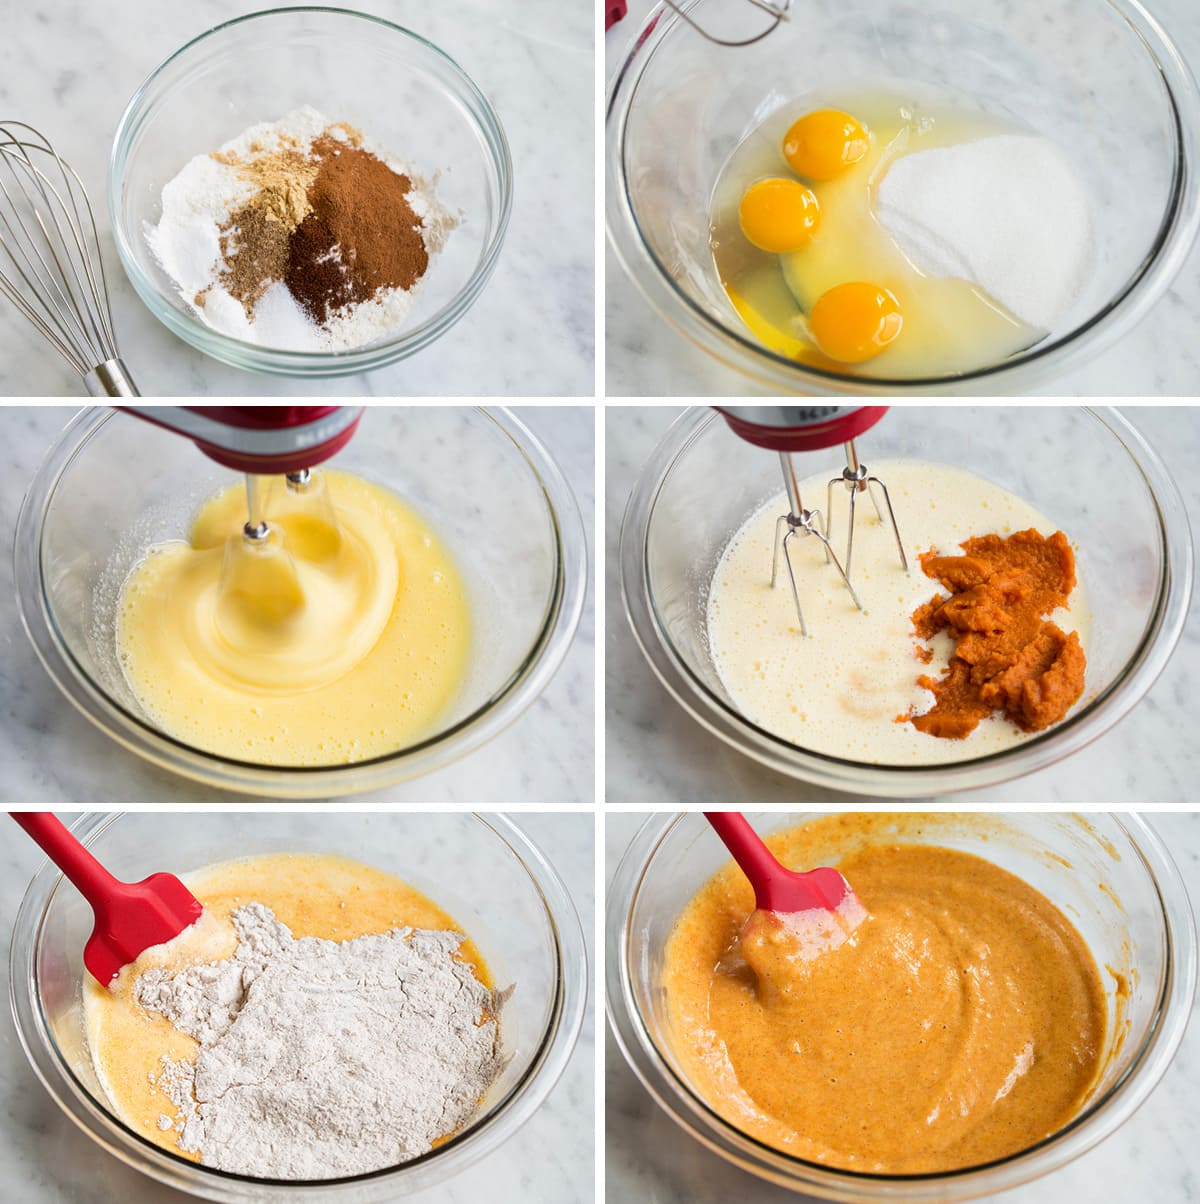 Showing steps of how to make a pumpkin roll. Mixing ingredients in a glass mixing bowl with an electric mixer and spatula.